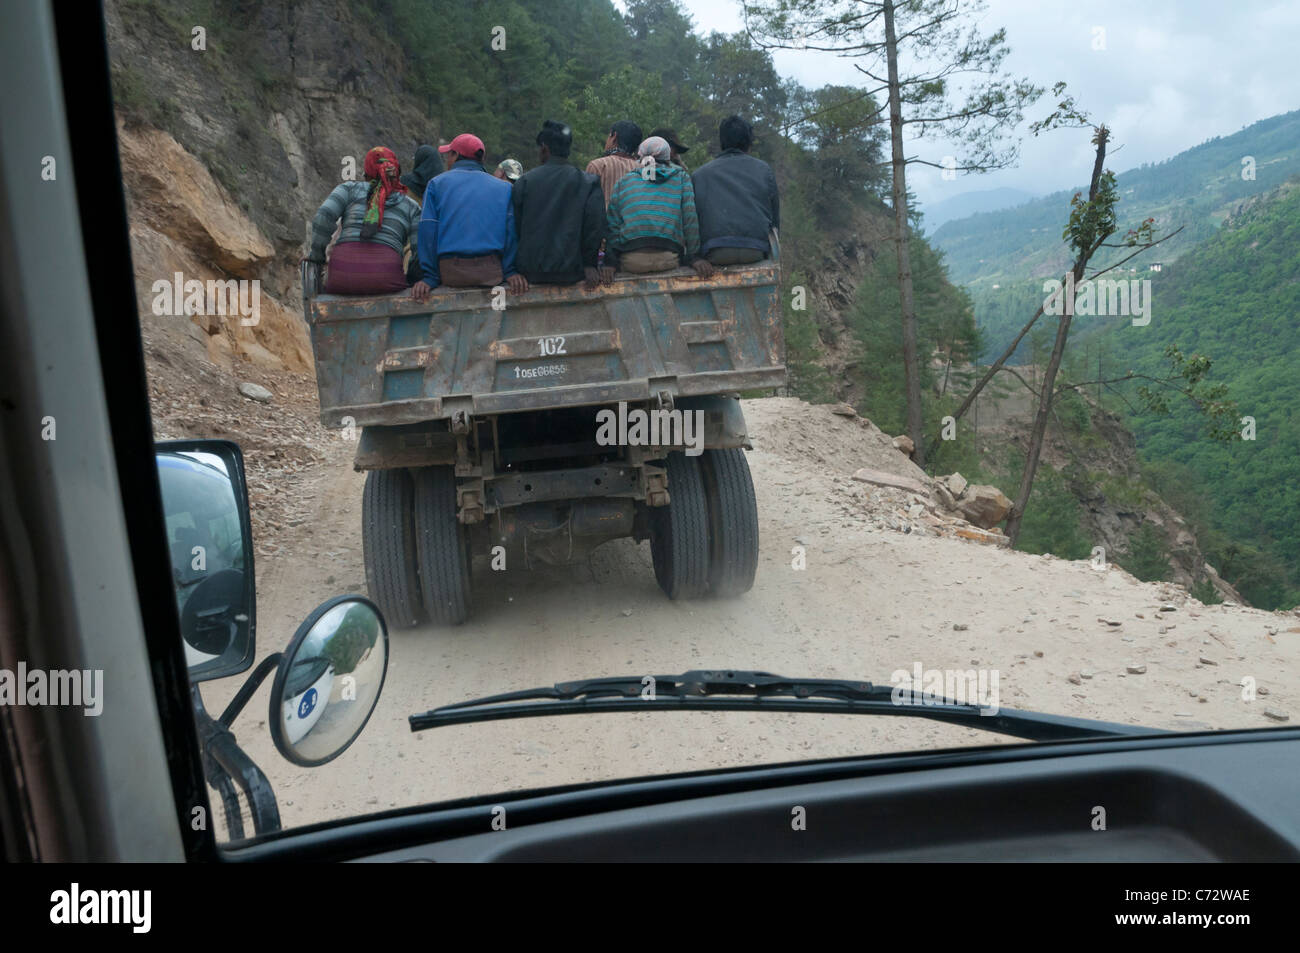 on the road to Phuentsholing. Bhutan - Stock Image